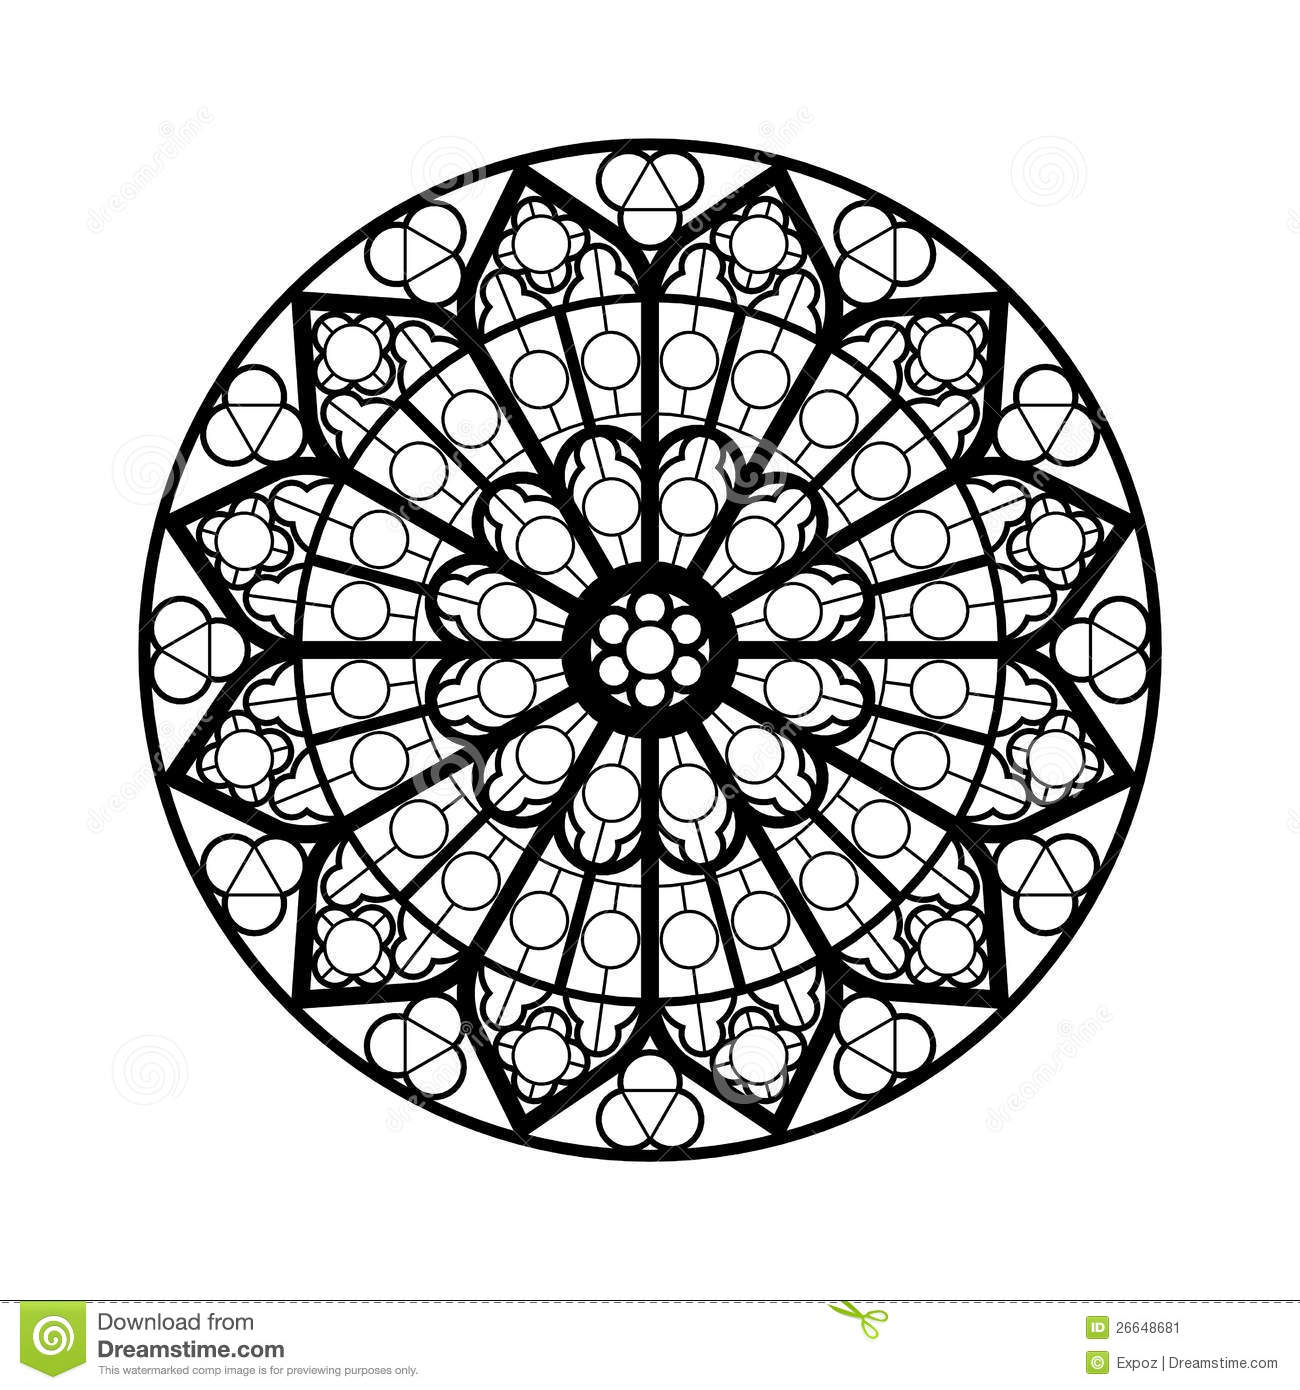 Stained glass window shape stock illustration image of for Stained glass window coloring pages